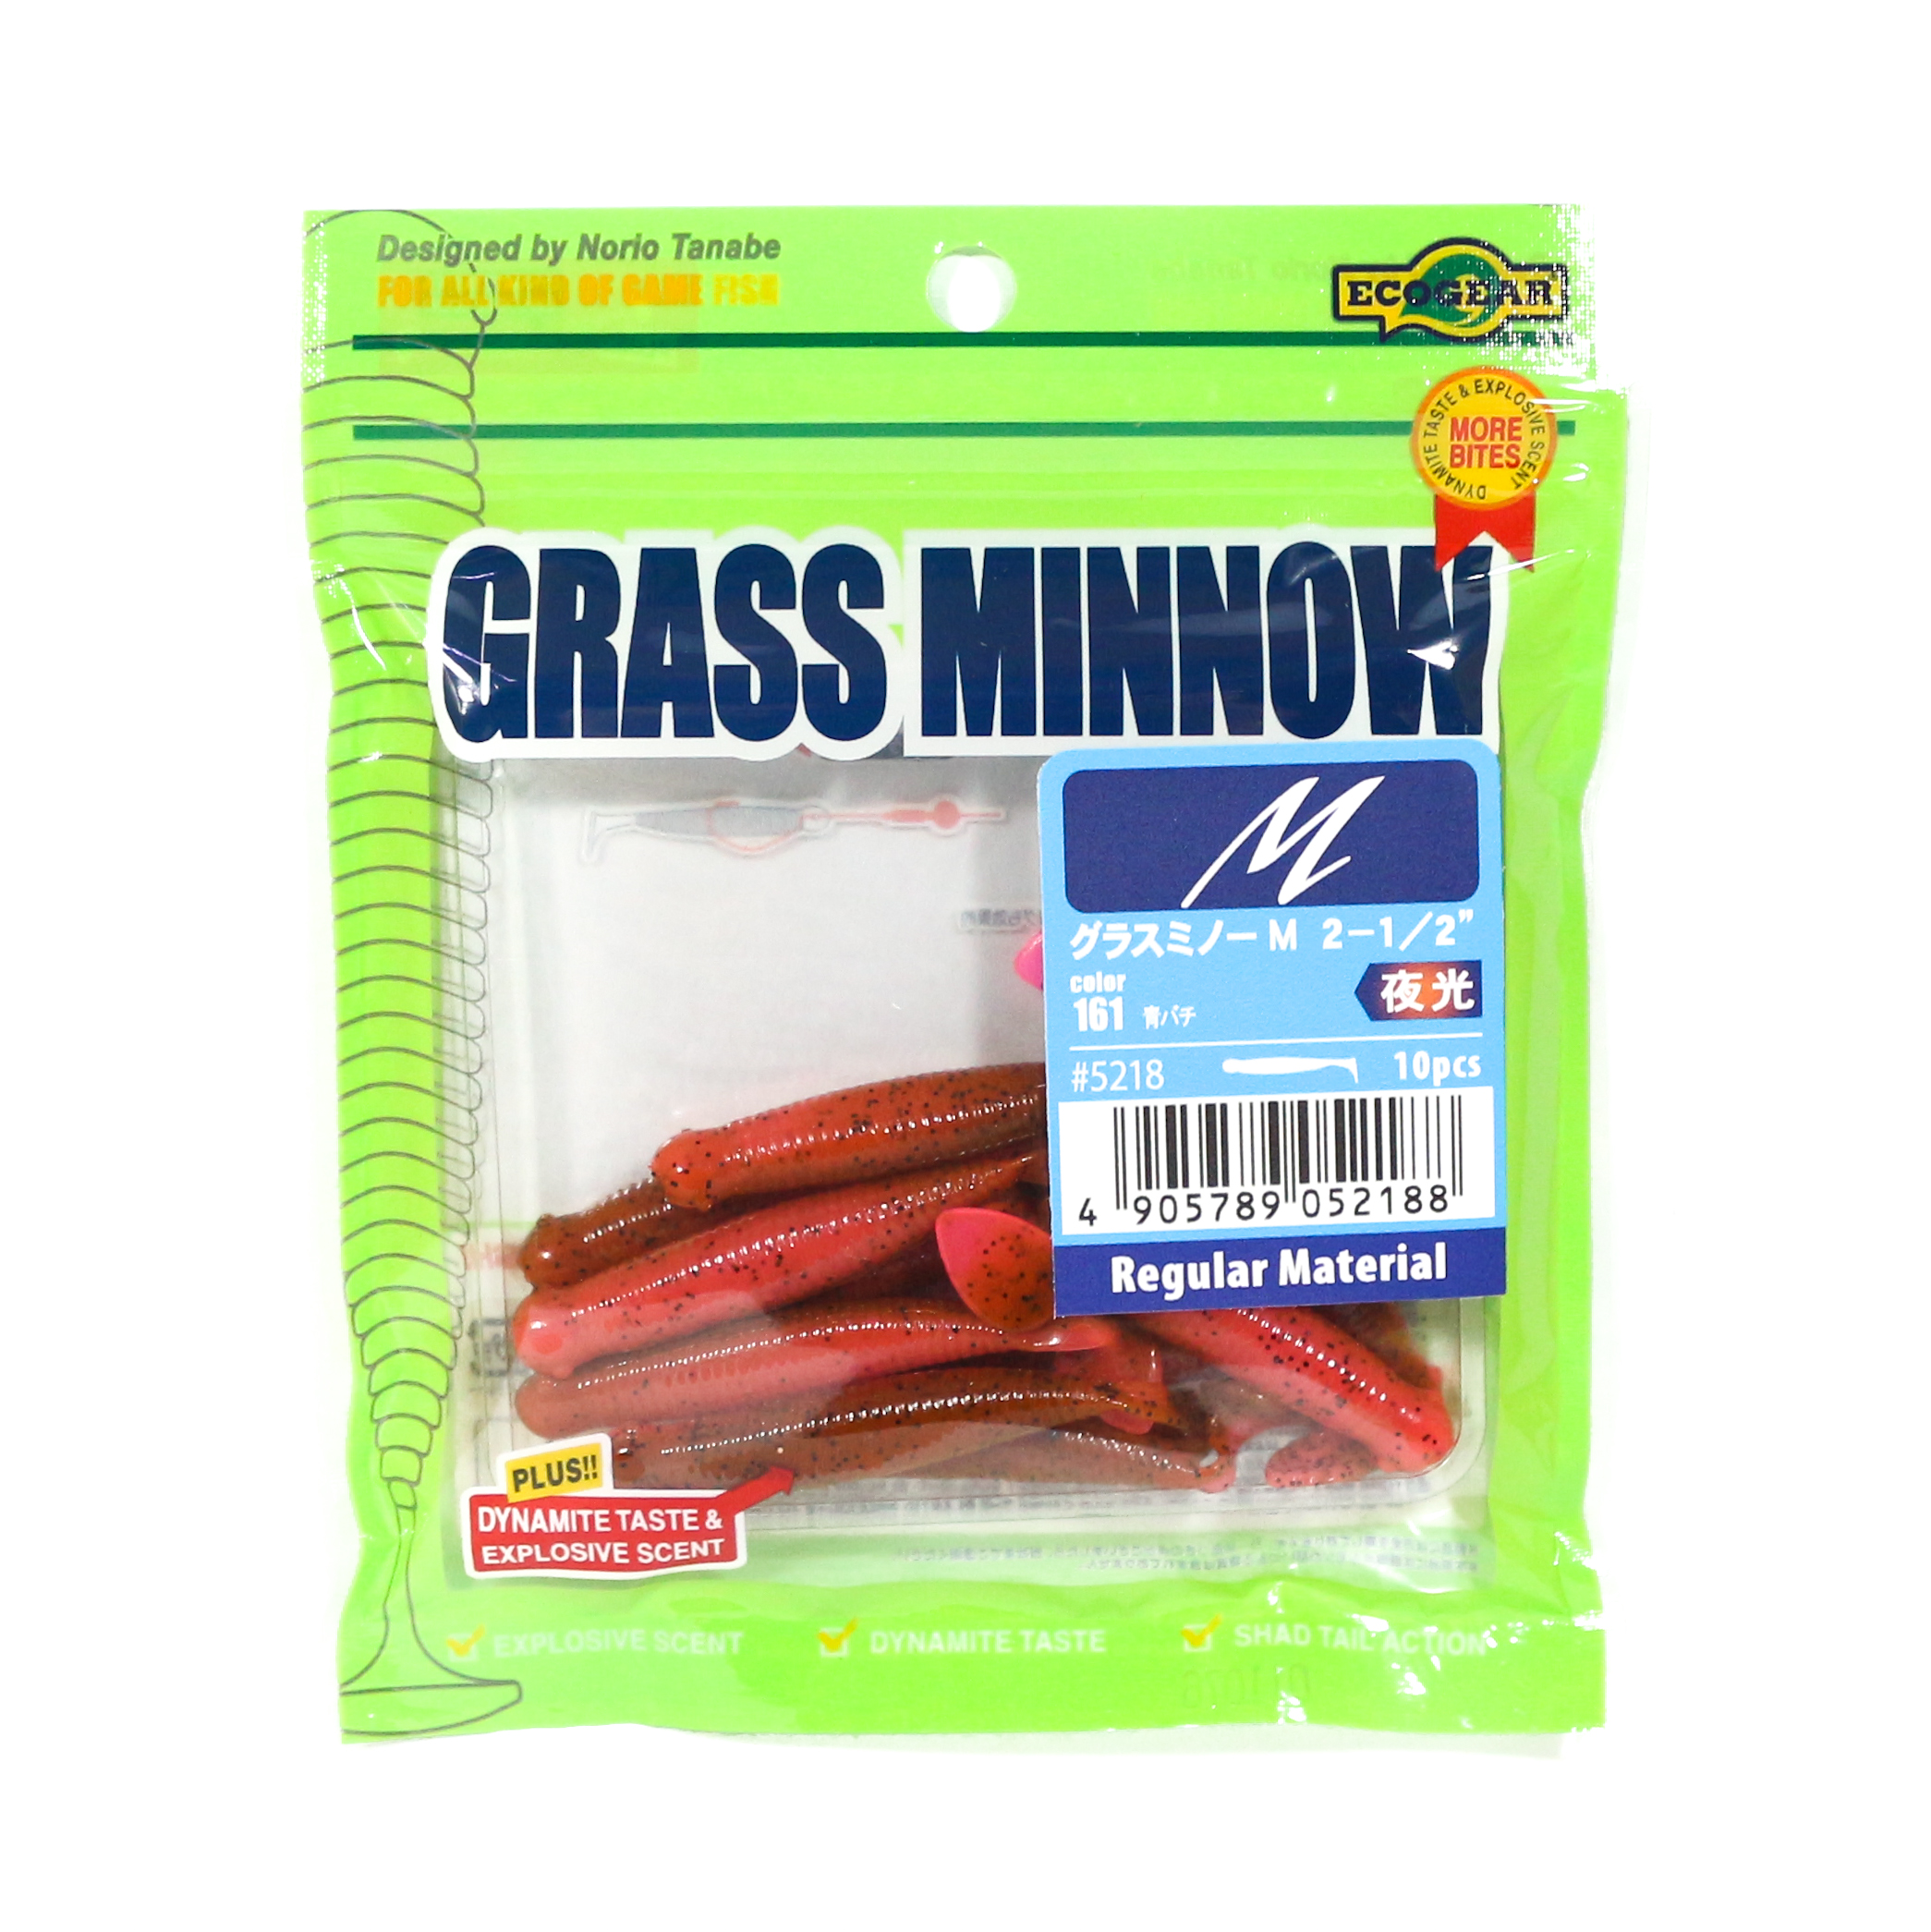 Ecogear Soft Lure Grass Minnow M 2-1/2 Inch 10 piece per pack 161 (2188)